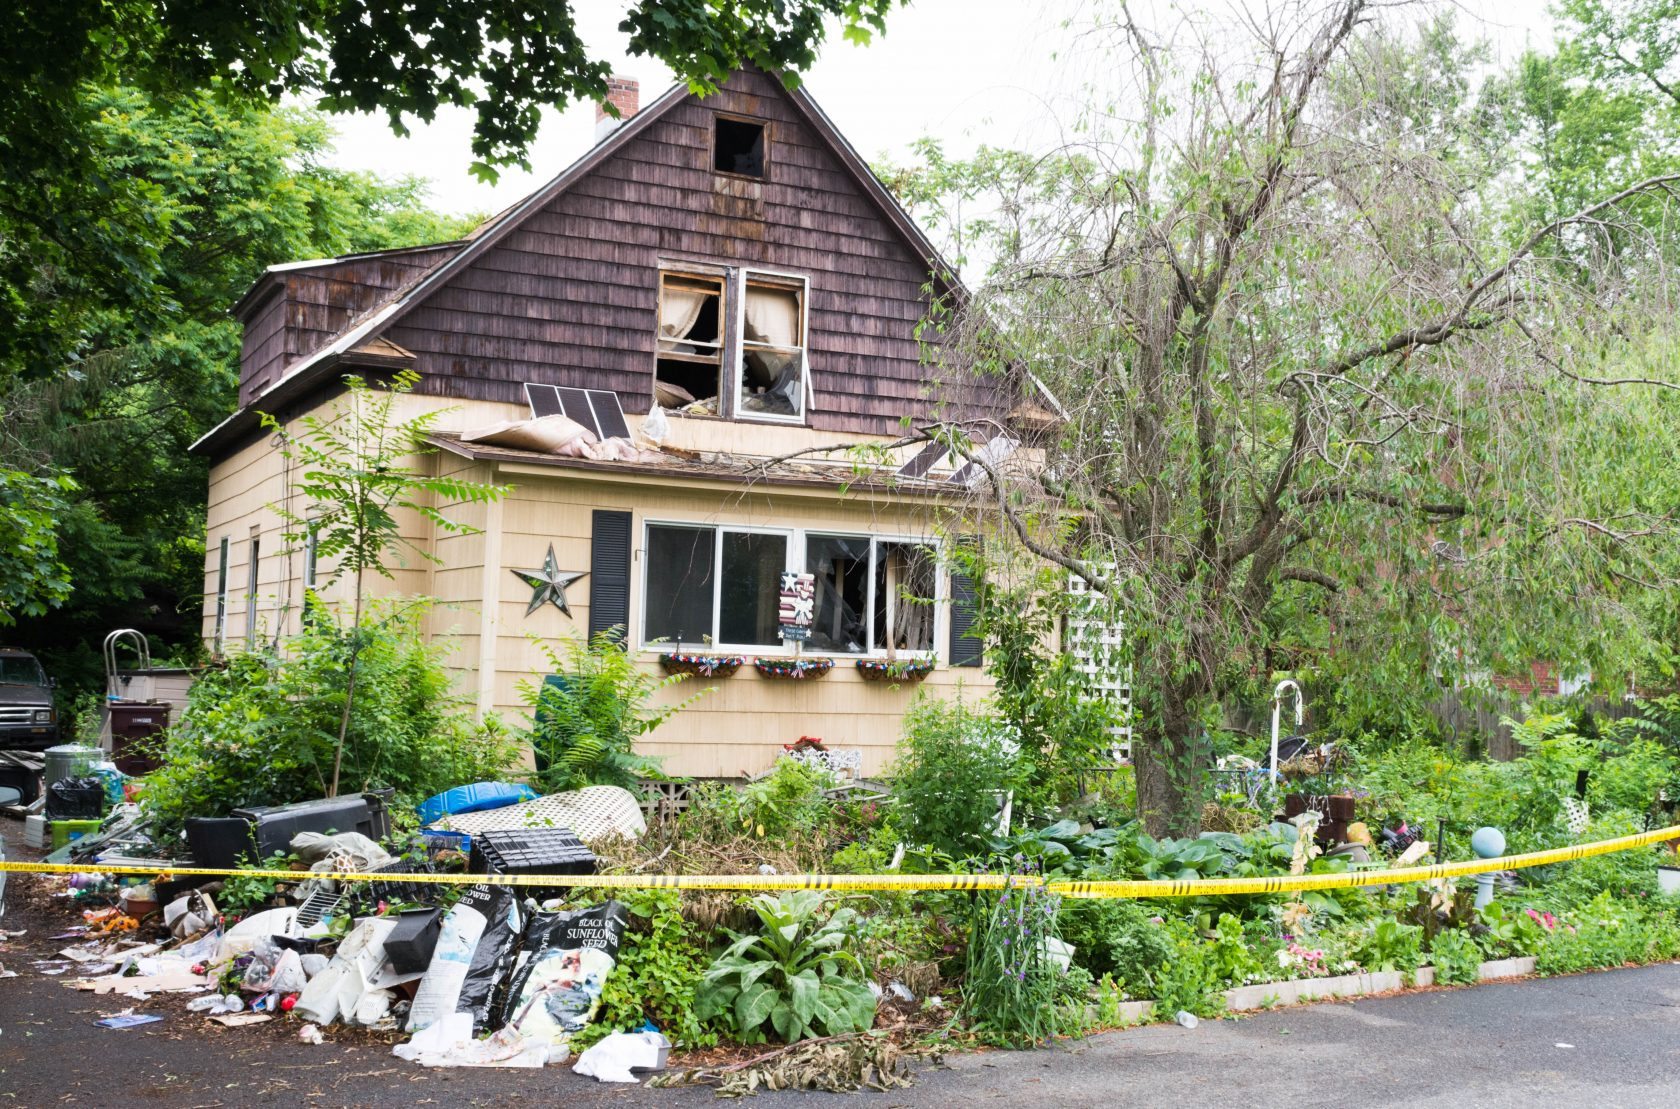 Clean out efforts underway at Park Street home